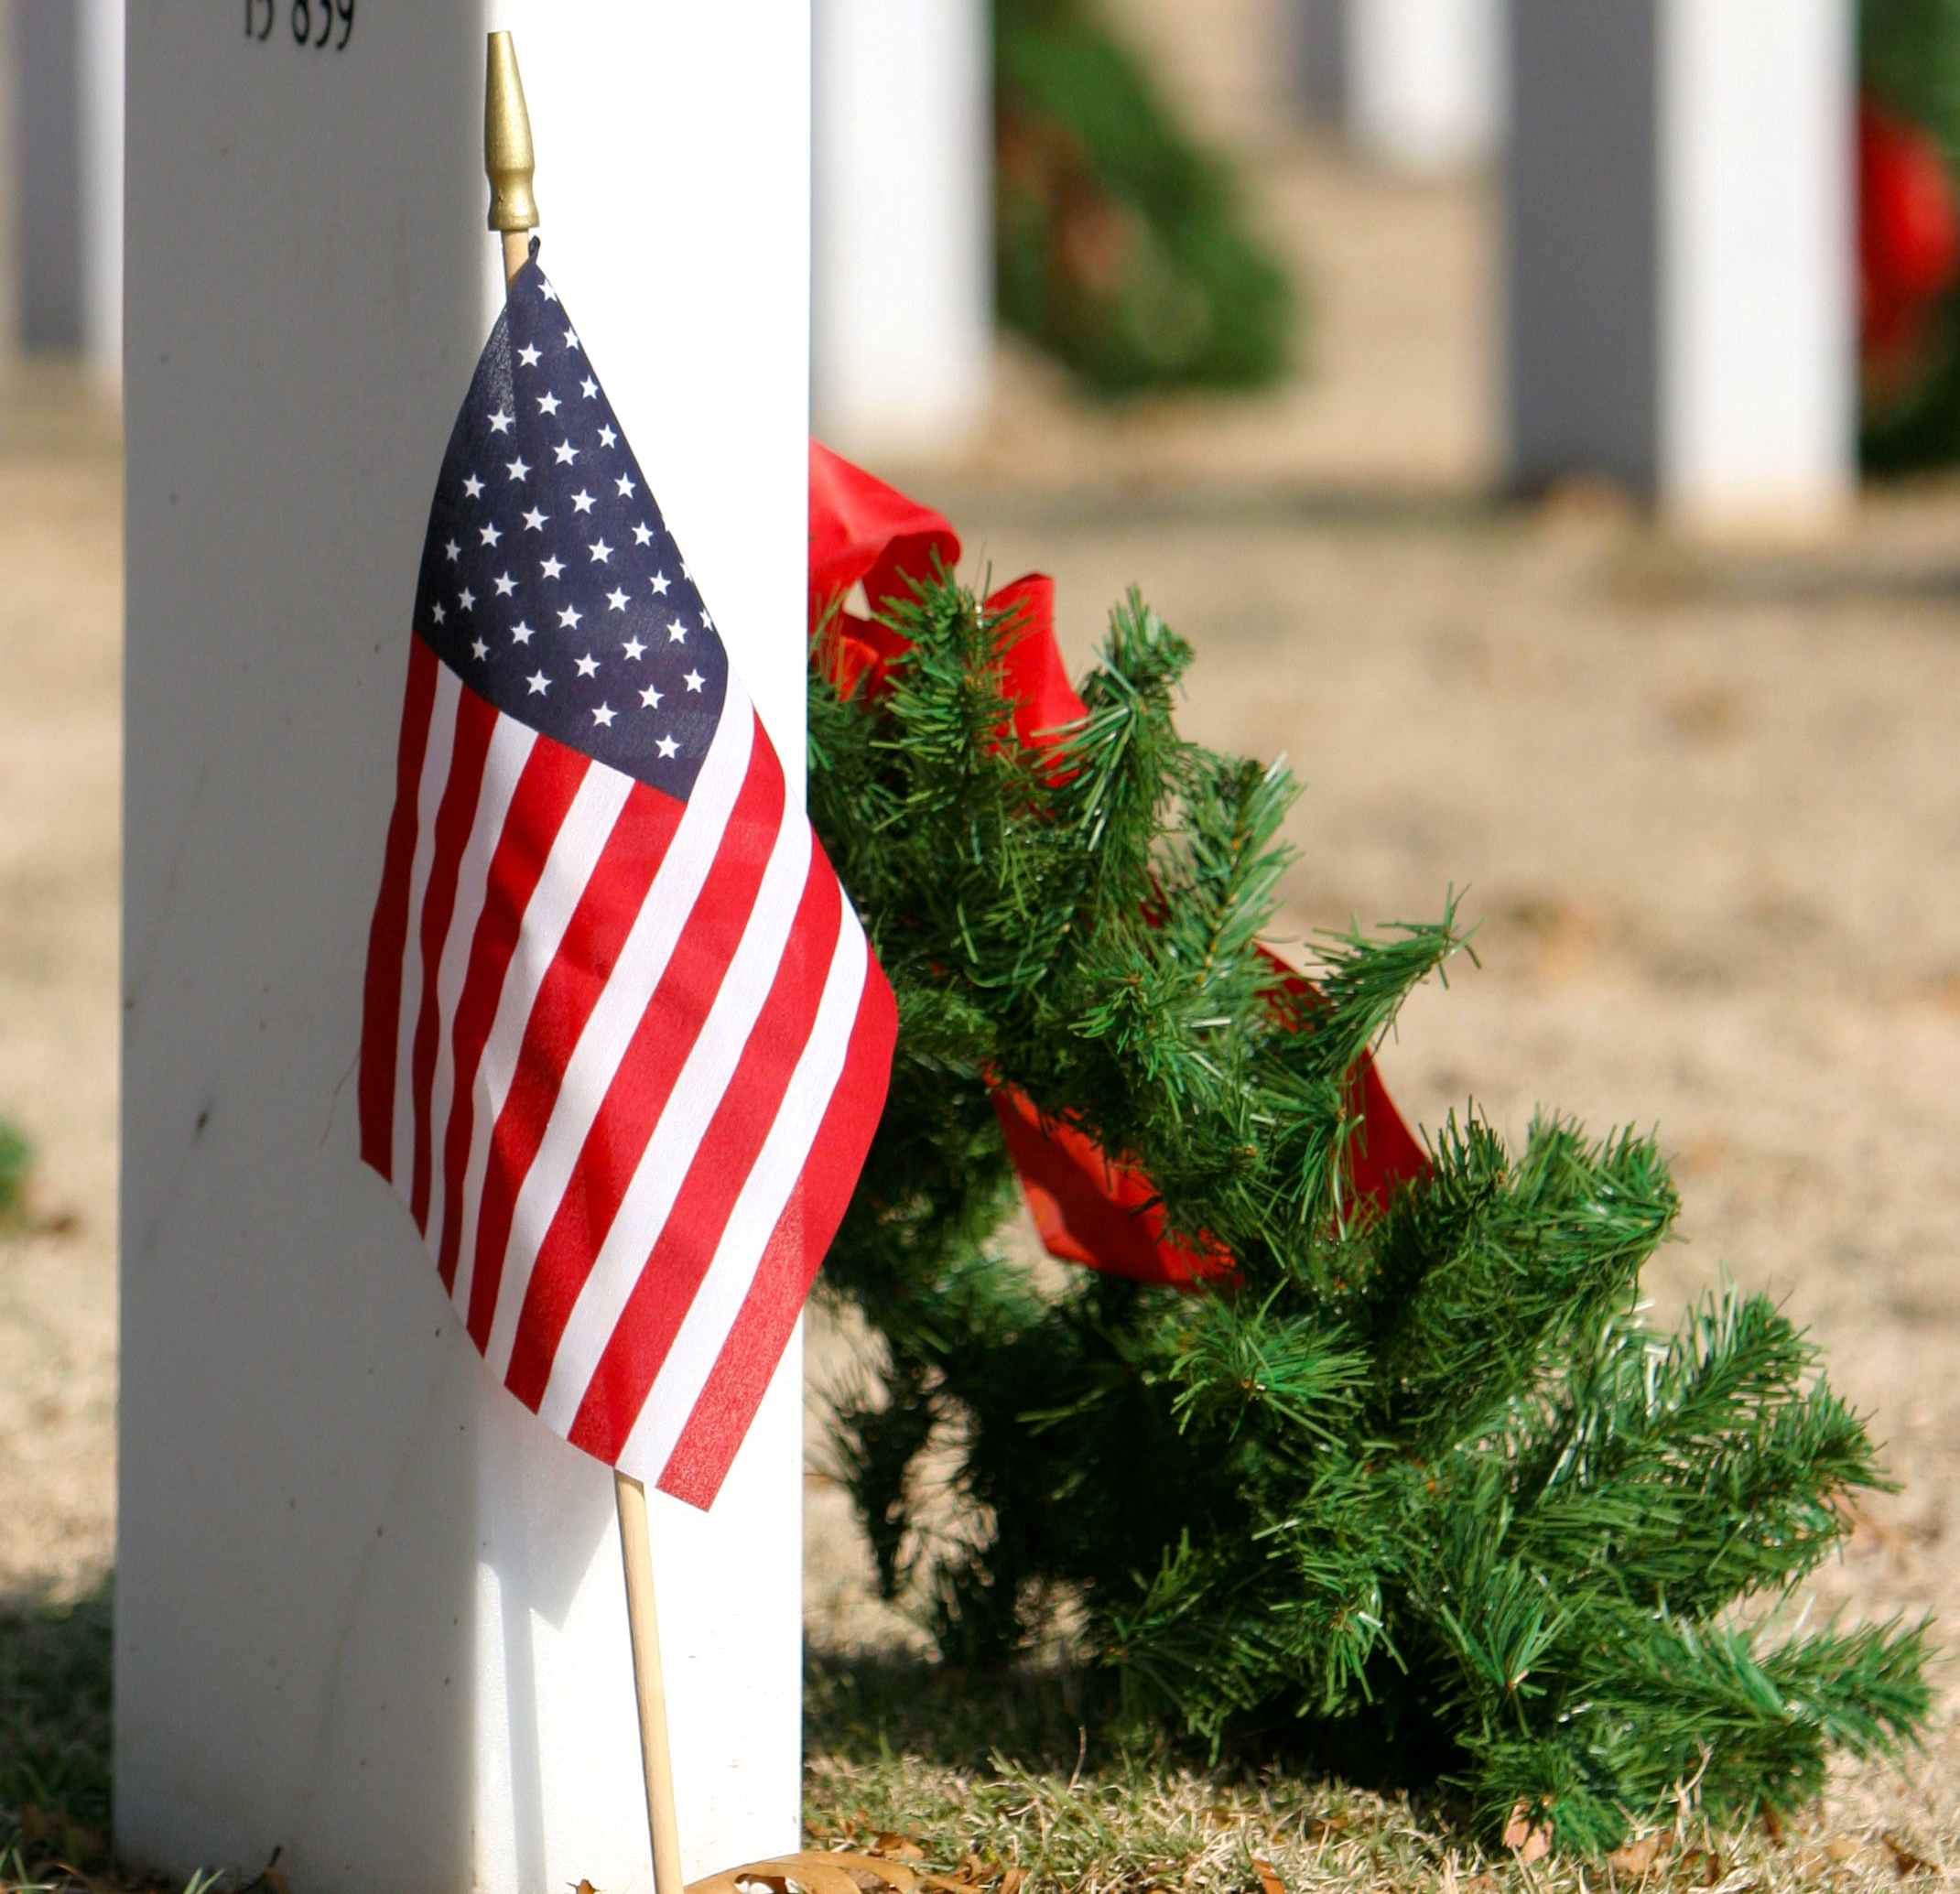 Wreaths laid at graves to remember and honor veterans